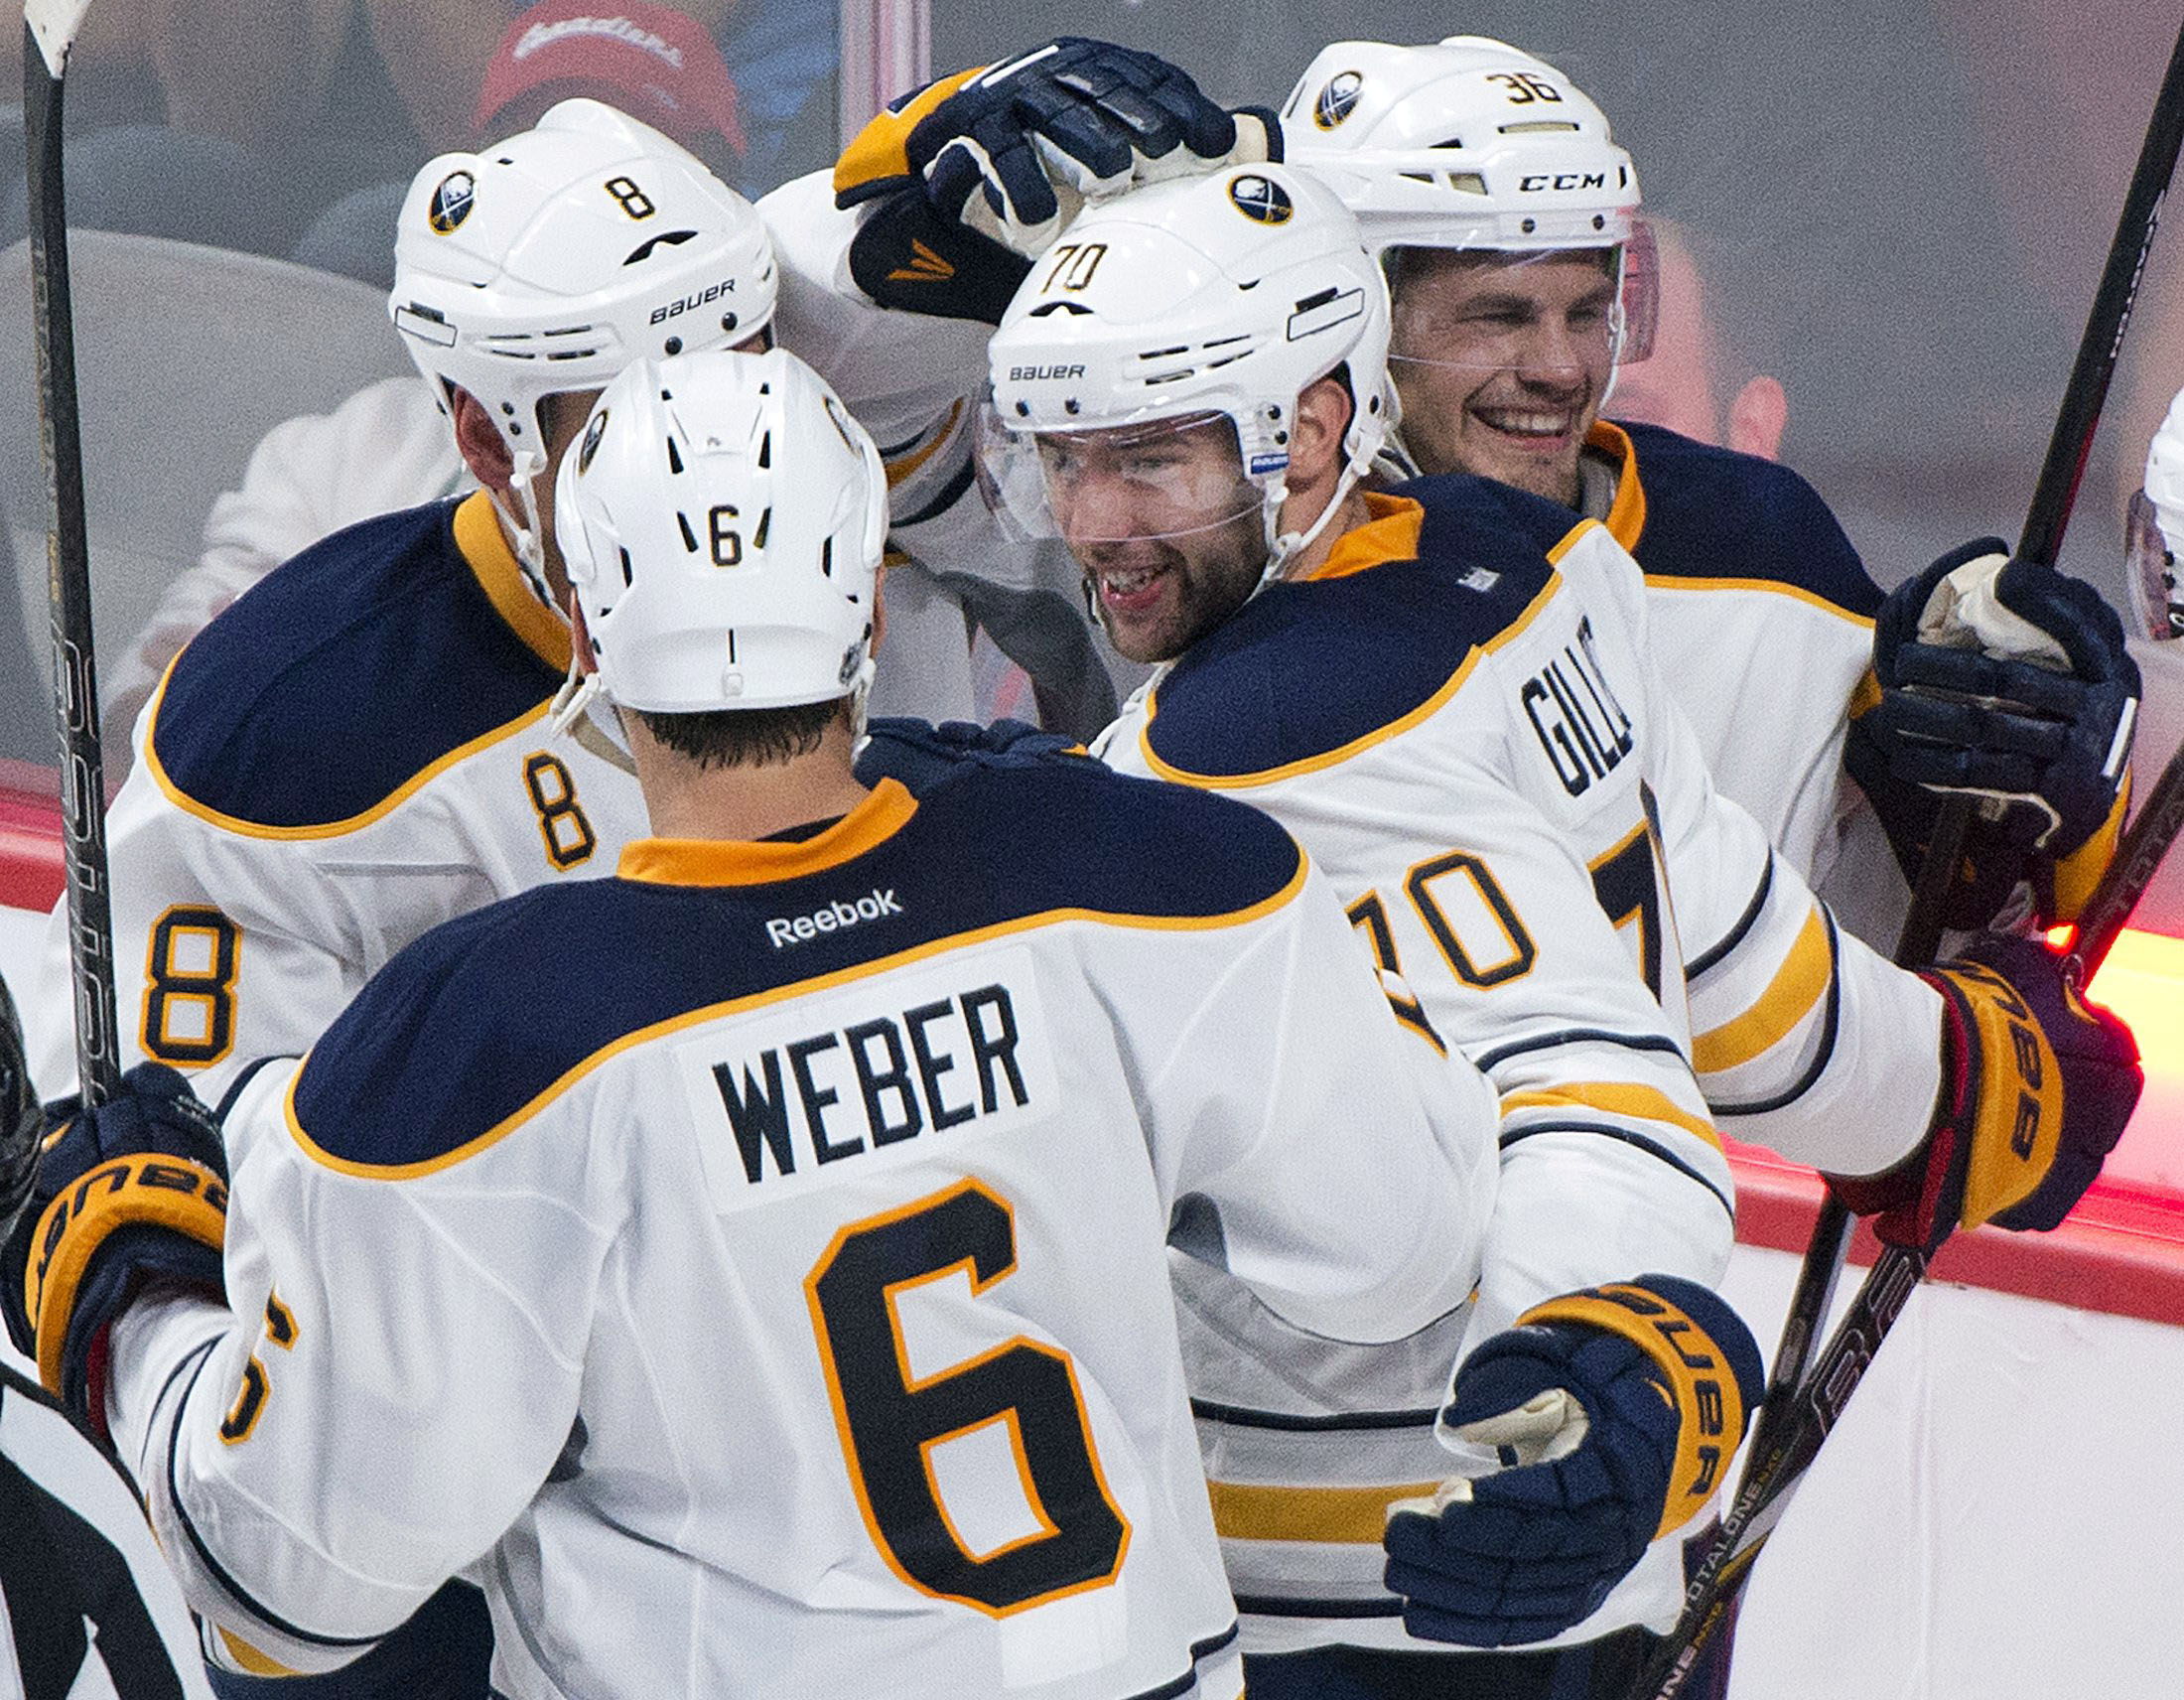 Buffalo Sabres' Colton Gillies (70) celebrates with teammates Mike Weber (6), Cody McCormick (8) and Patrick Kaleta (36) after scoring against the Montreal Canadiens during the third period of an NHL preseason hockey game in Montreal, Sunday, Sept. 15, 2013